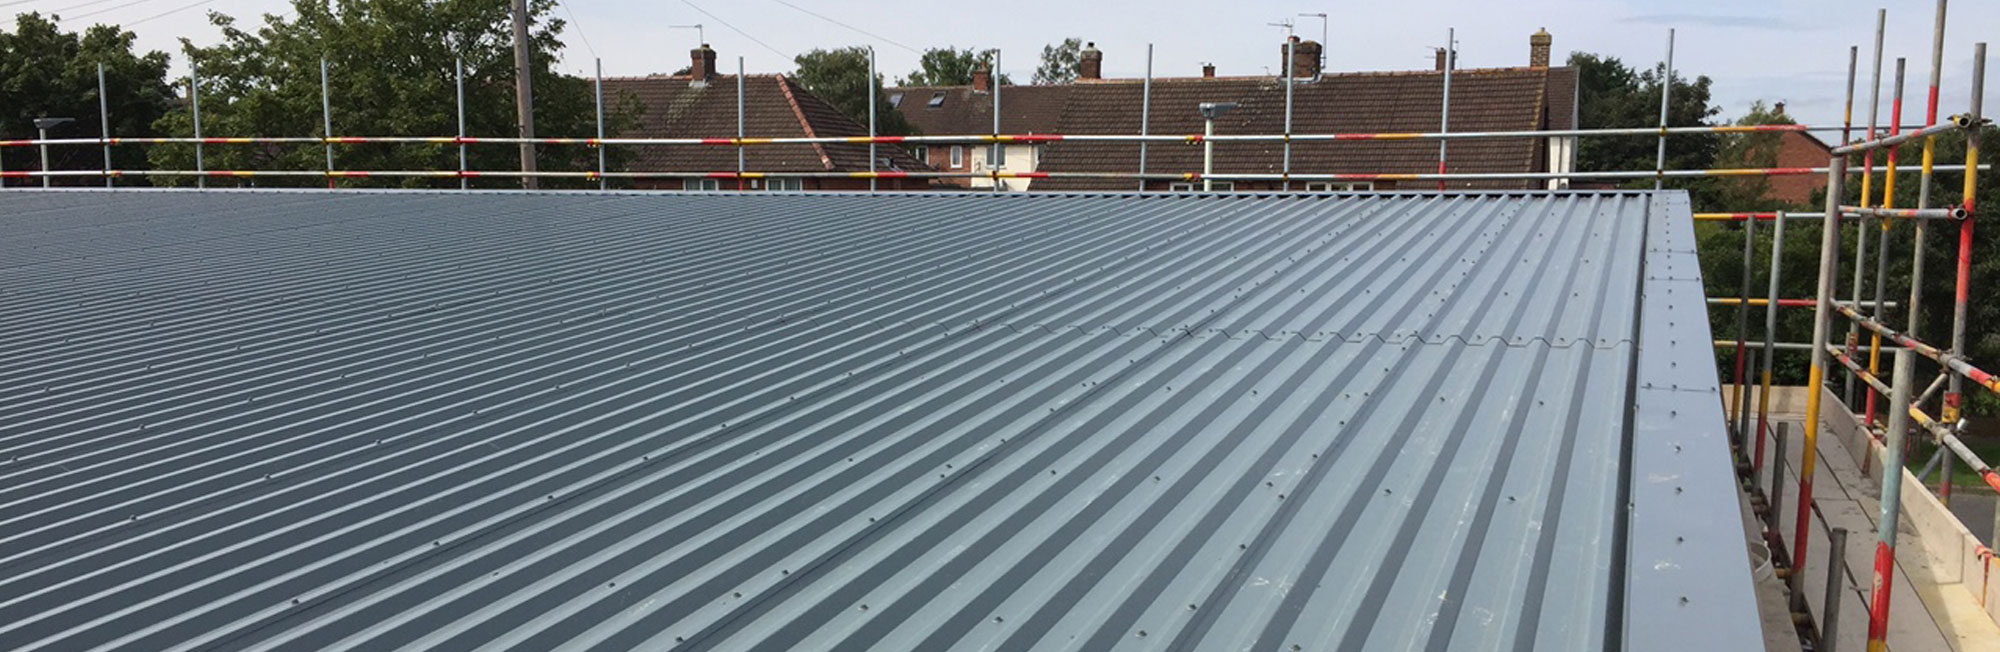 Commercial Roofing Contractors Newcastle